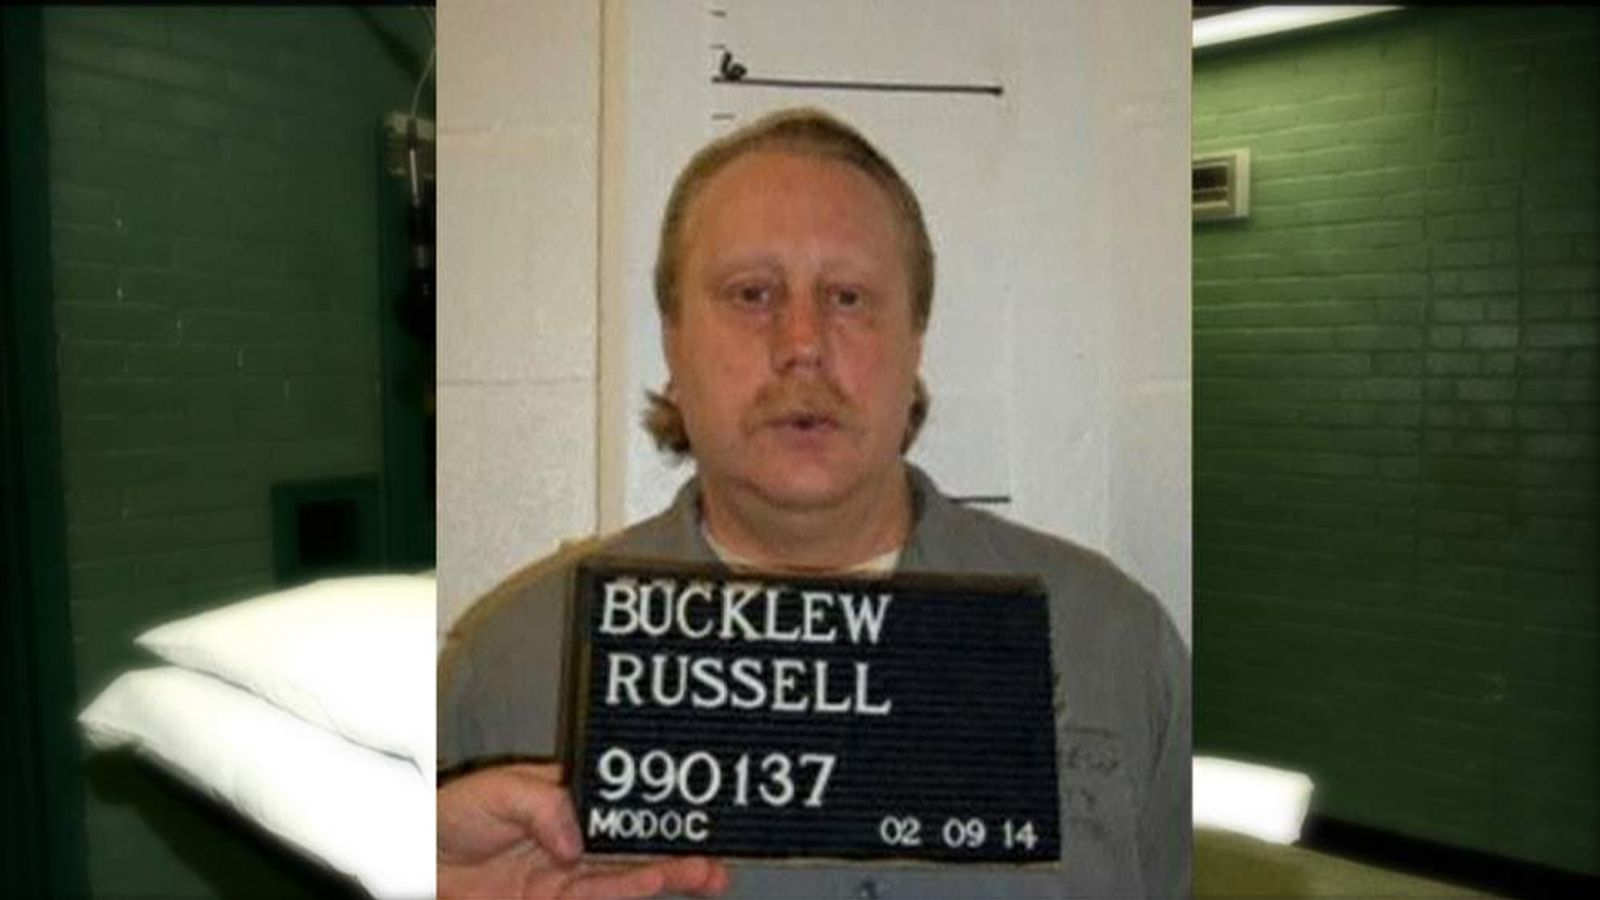 A Missouri prisoner has asked that his execution be videotaped, to record any evidence of cruelty.